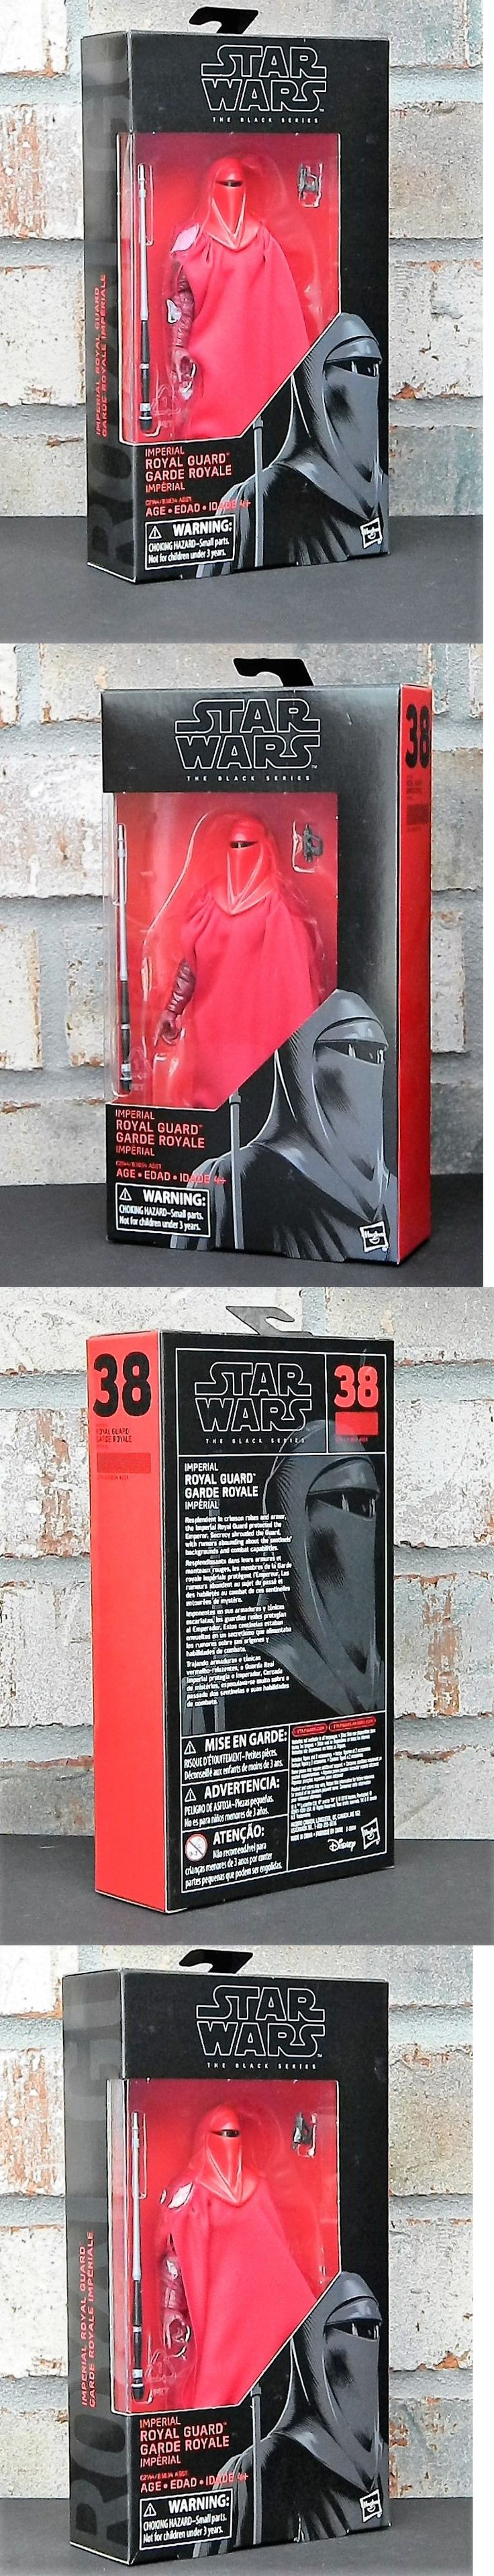 TV Movie and Video Games 75708: Emperor S Royal Guard Star Wars The Black Series 6 Inch Action Figure Rotj -> BUY IT NOW ONLY: $35.84 on eBay!